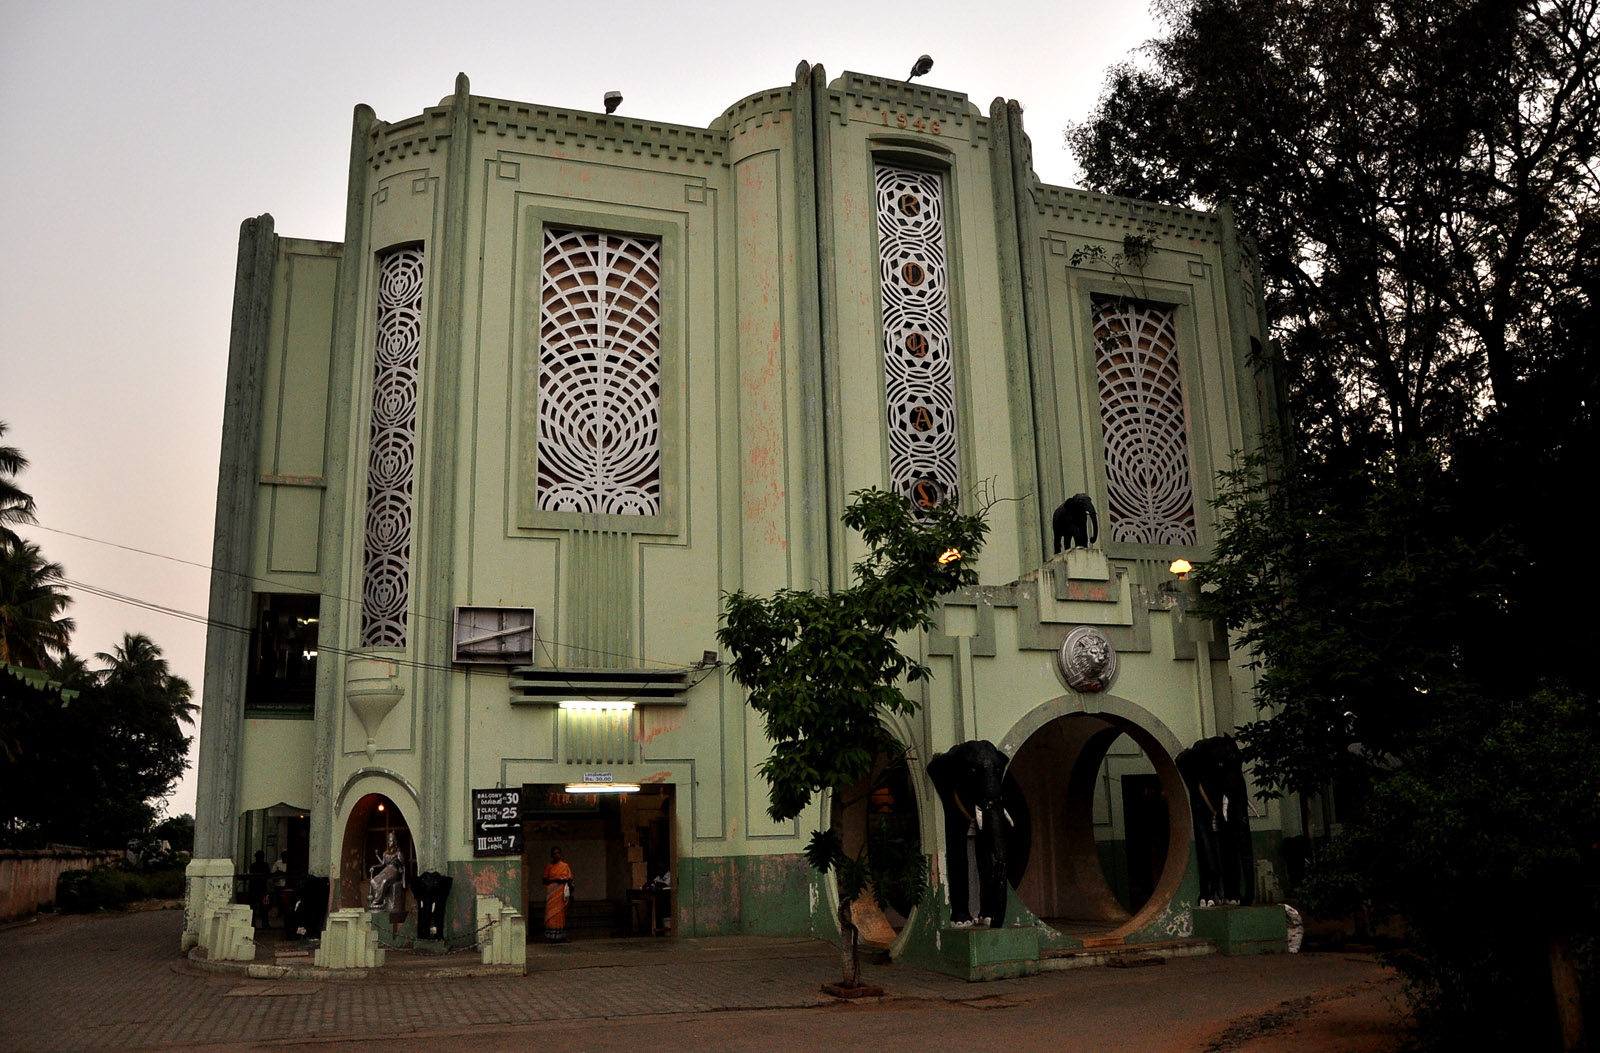 Pradeep damodaran inside kovai one of the oldest theatres in kovai unlike the multiplexes in the city that have been making a mad scramble to get a print of the latest flicks the movie released here for pongal is the solutioingenieria Choice Image